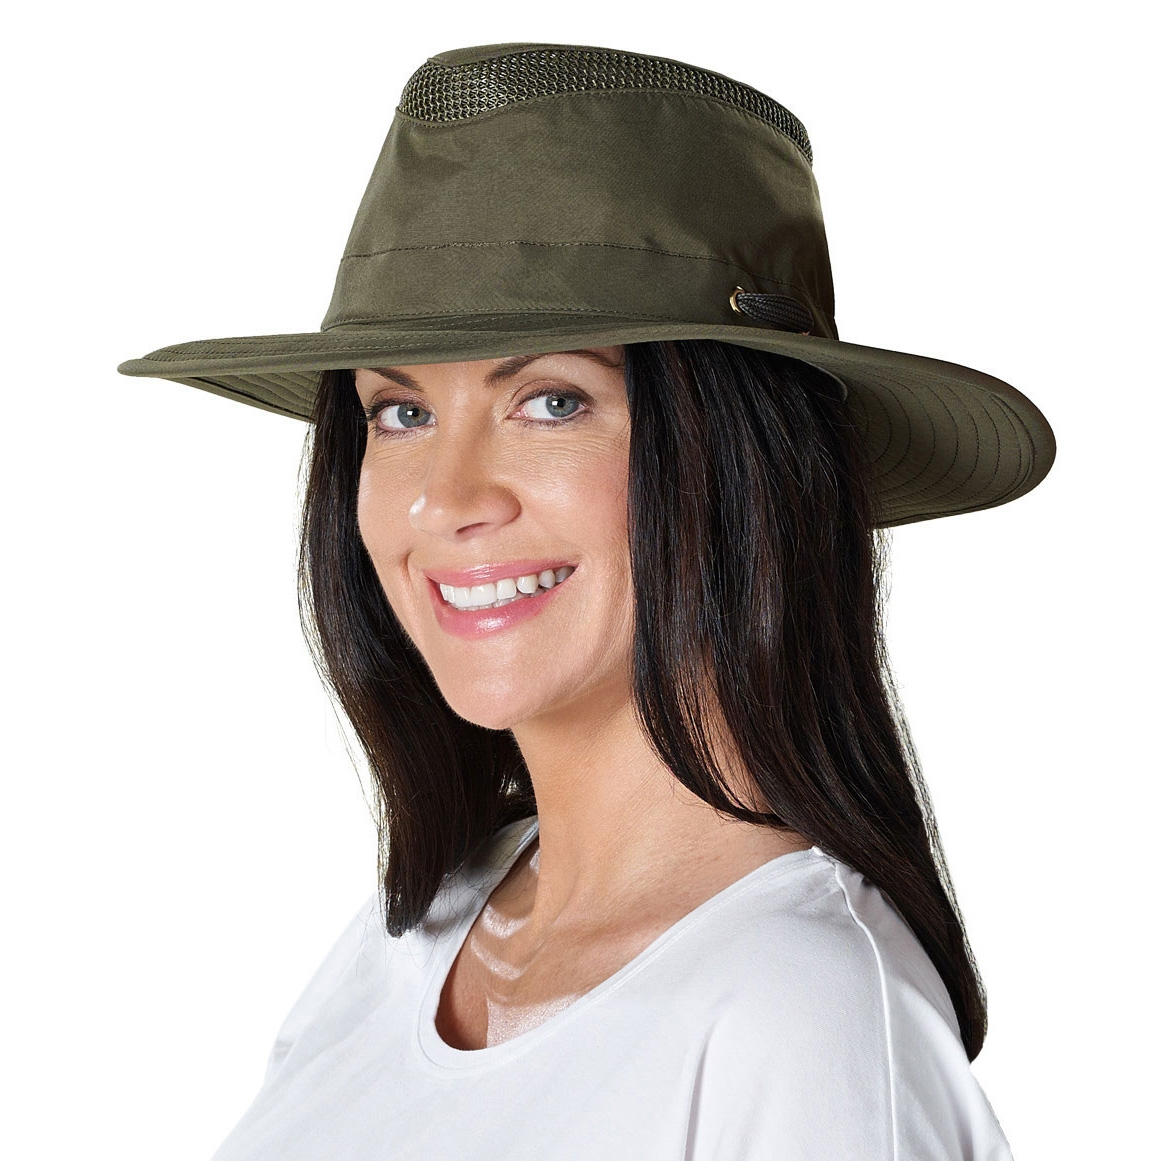 ... Image of Tilley Broad Curved Brim Lightweight Airflo Hat - Olive. « 6212b56c950